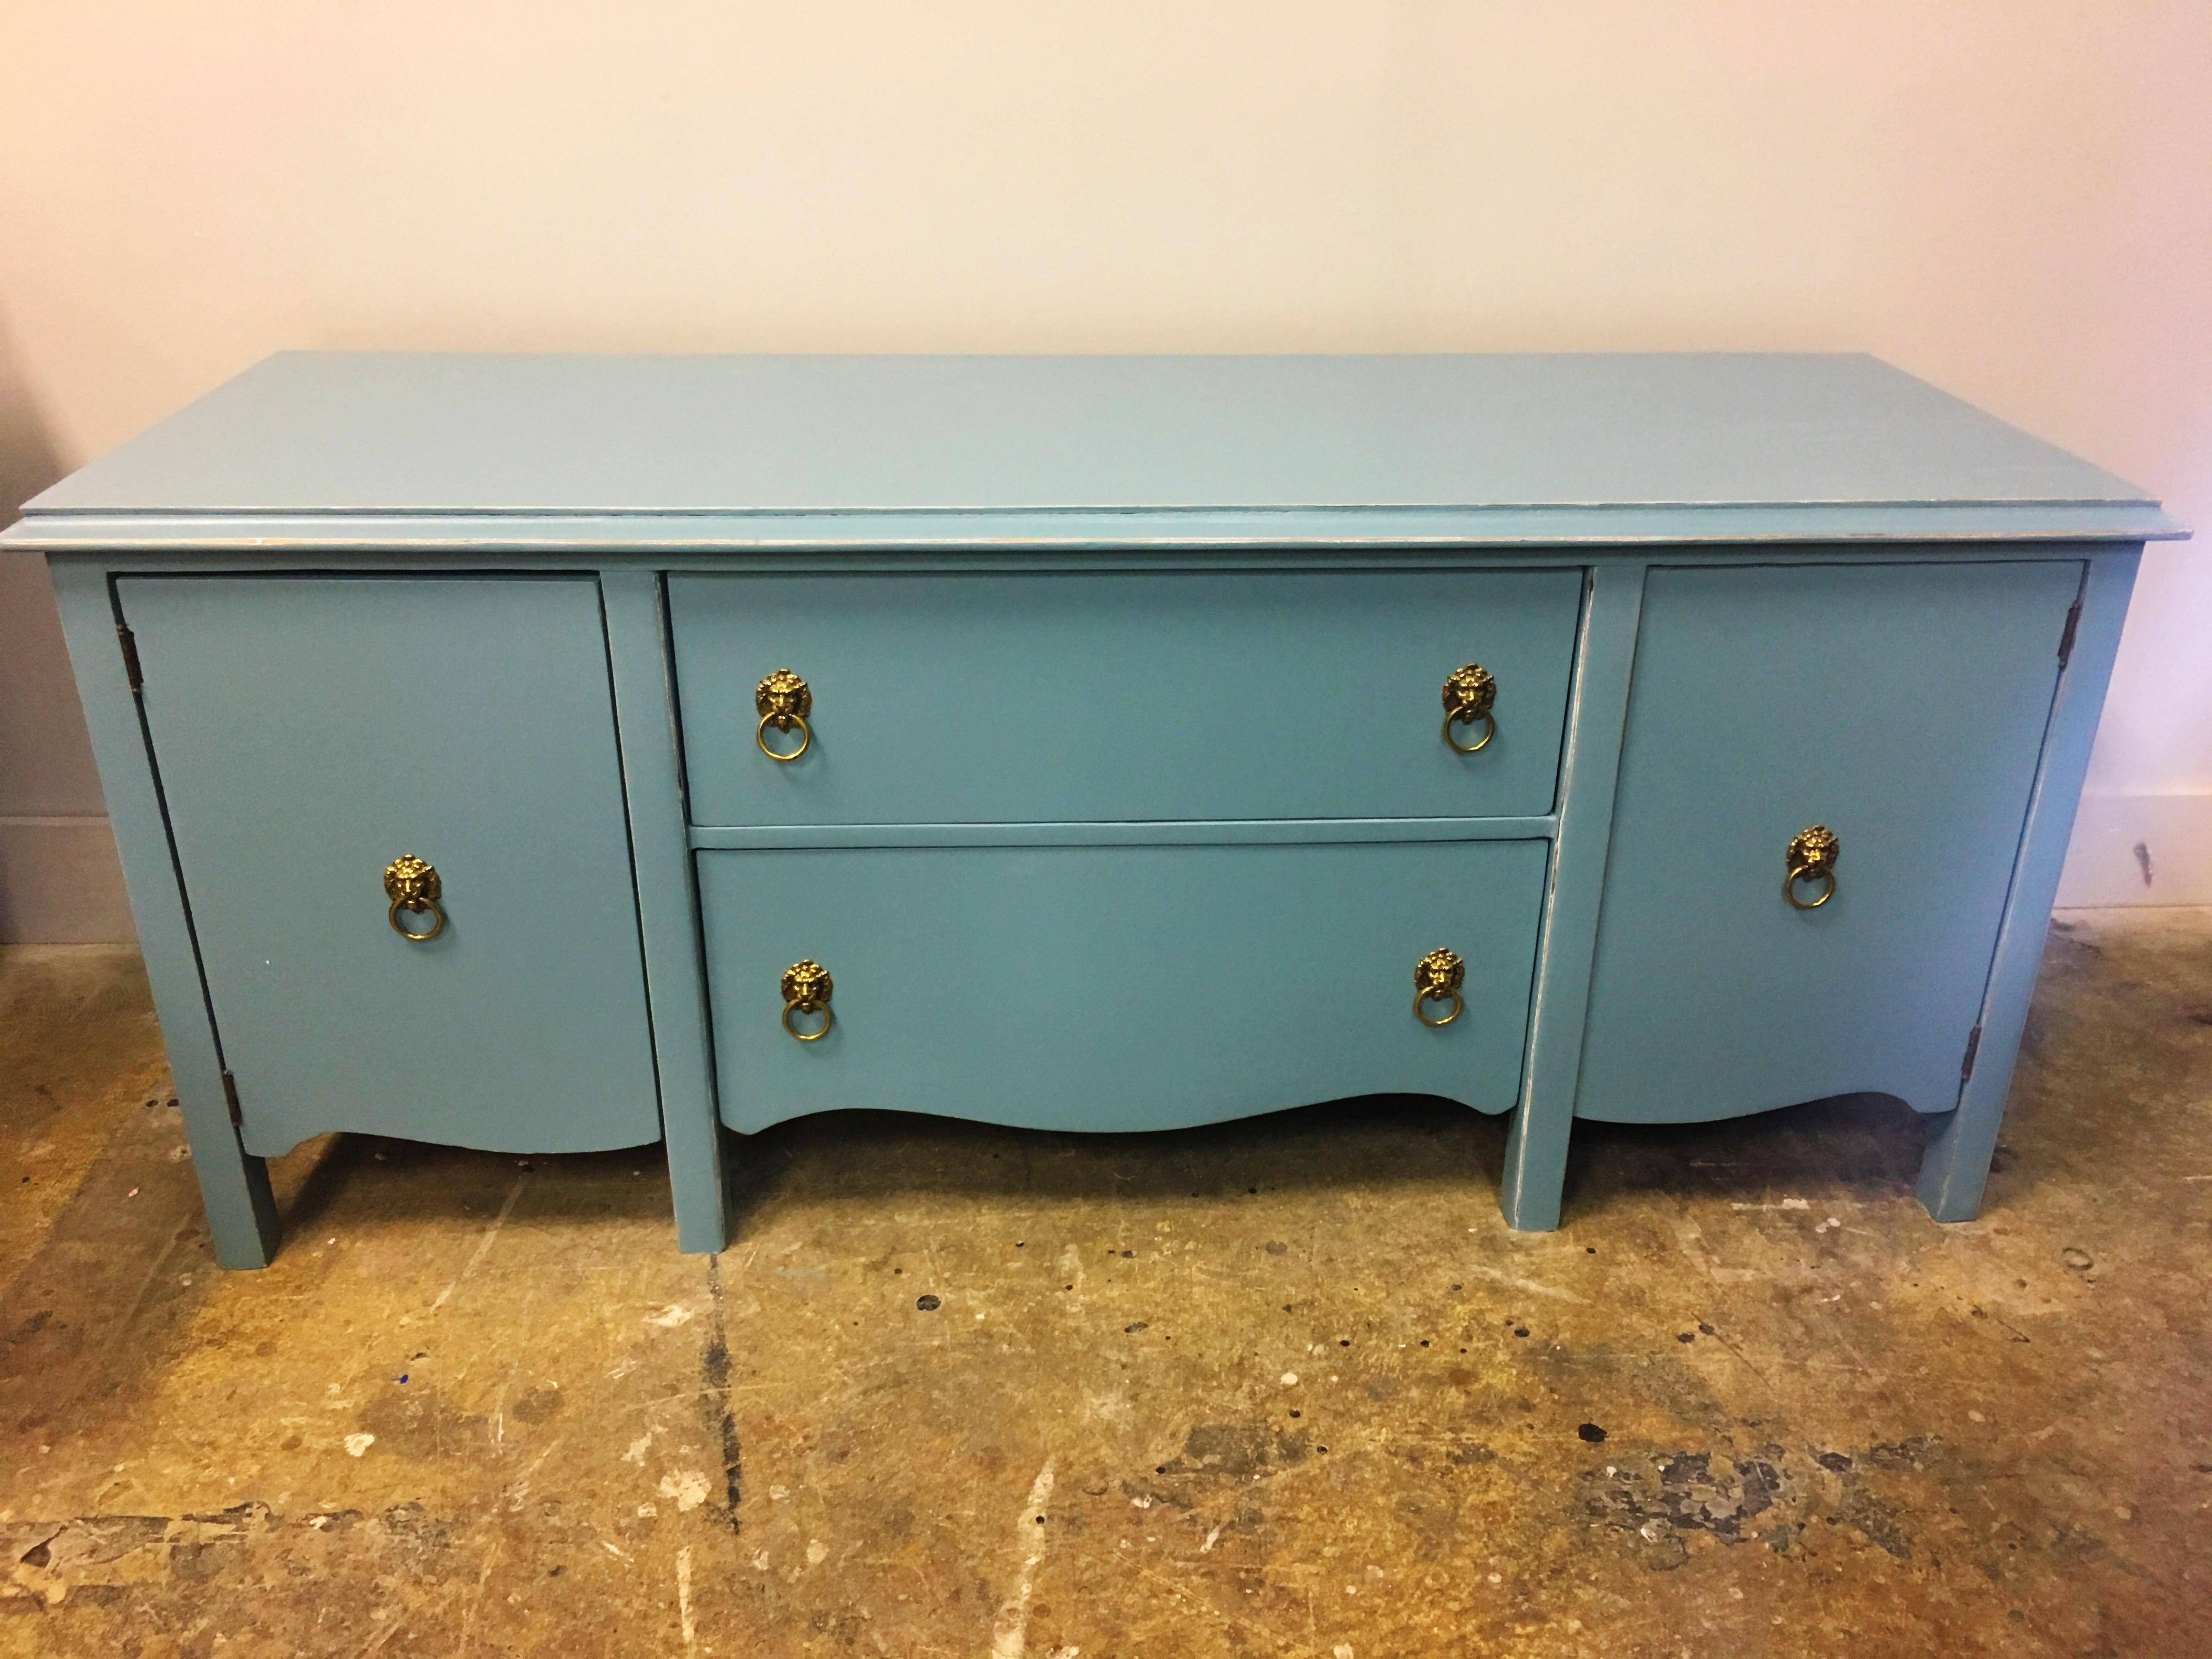 Beau Refinished Teal Media Cabinet   Image 6 Of 7